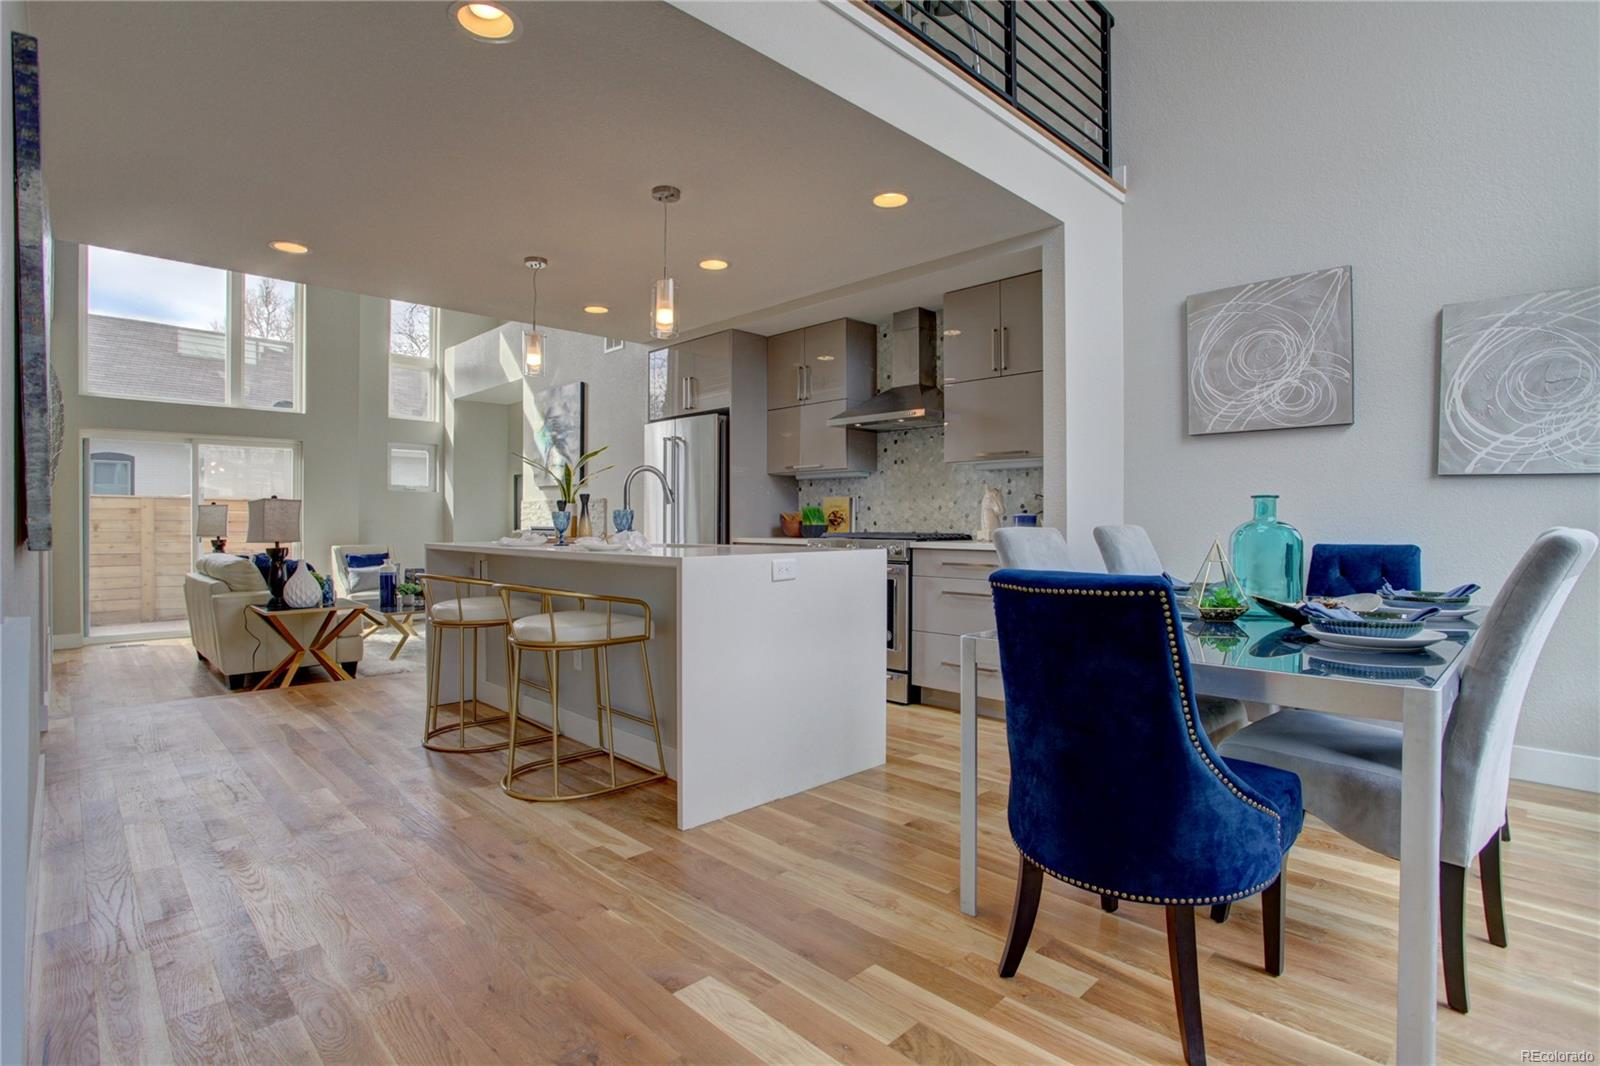 SOLD - August 2019: $685,000